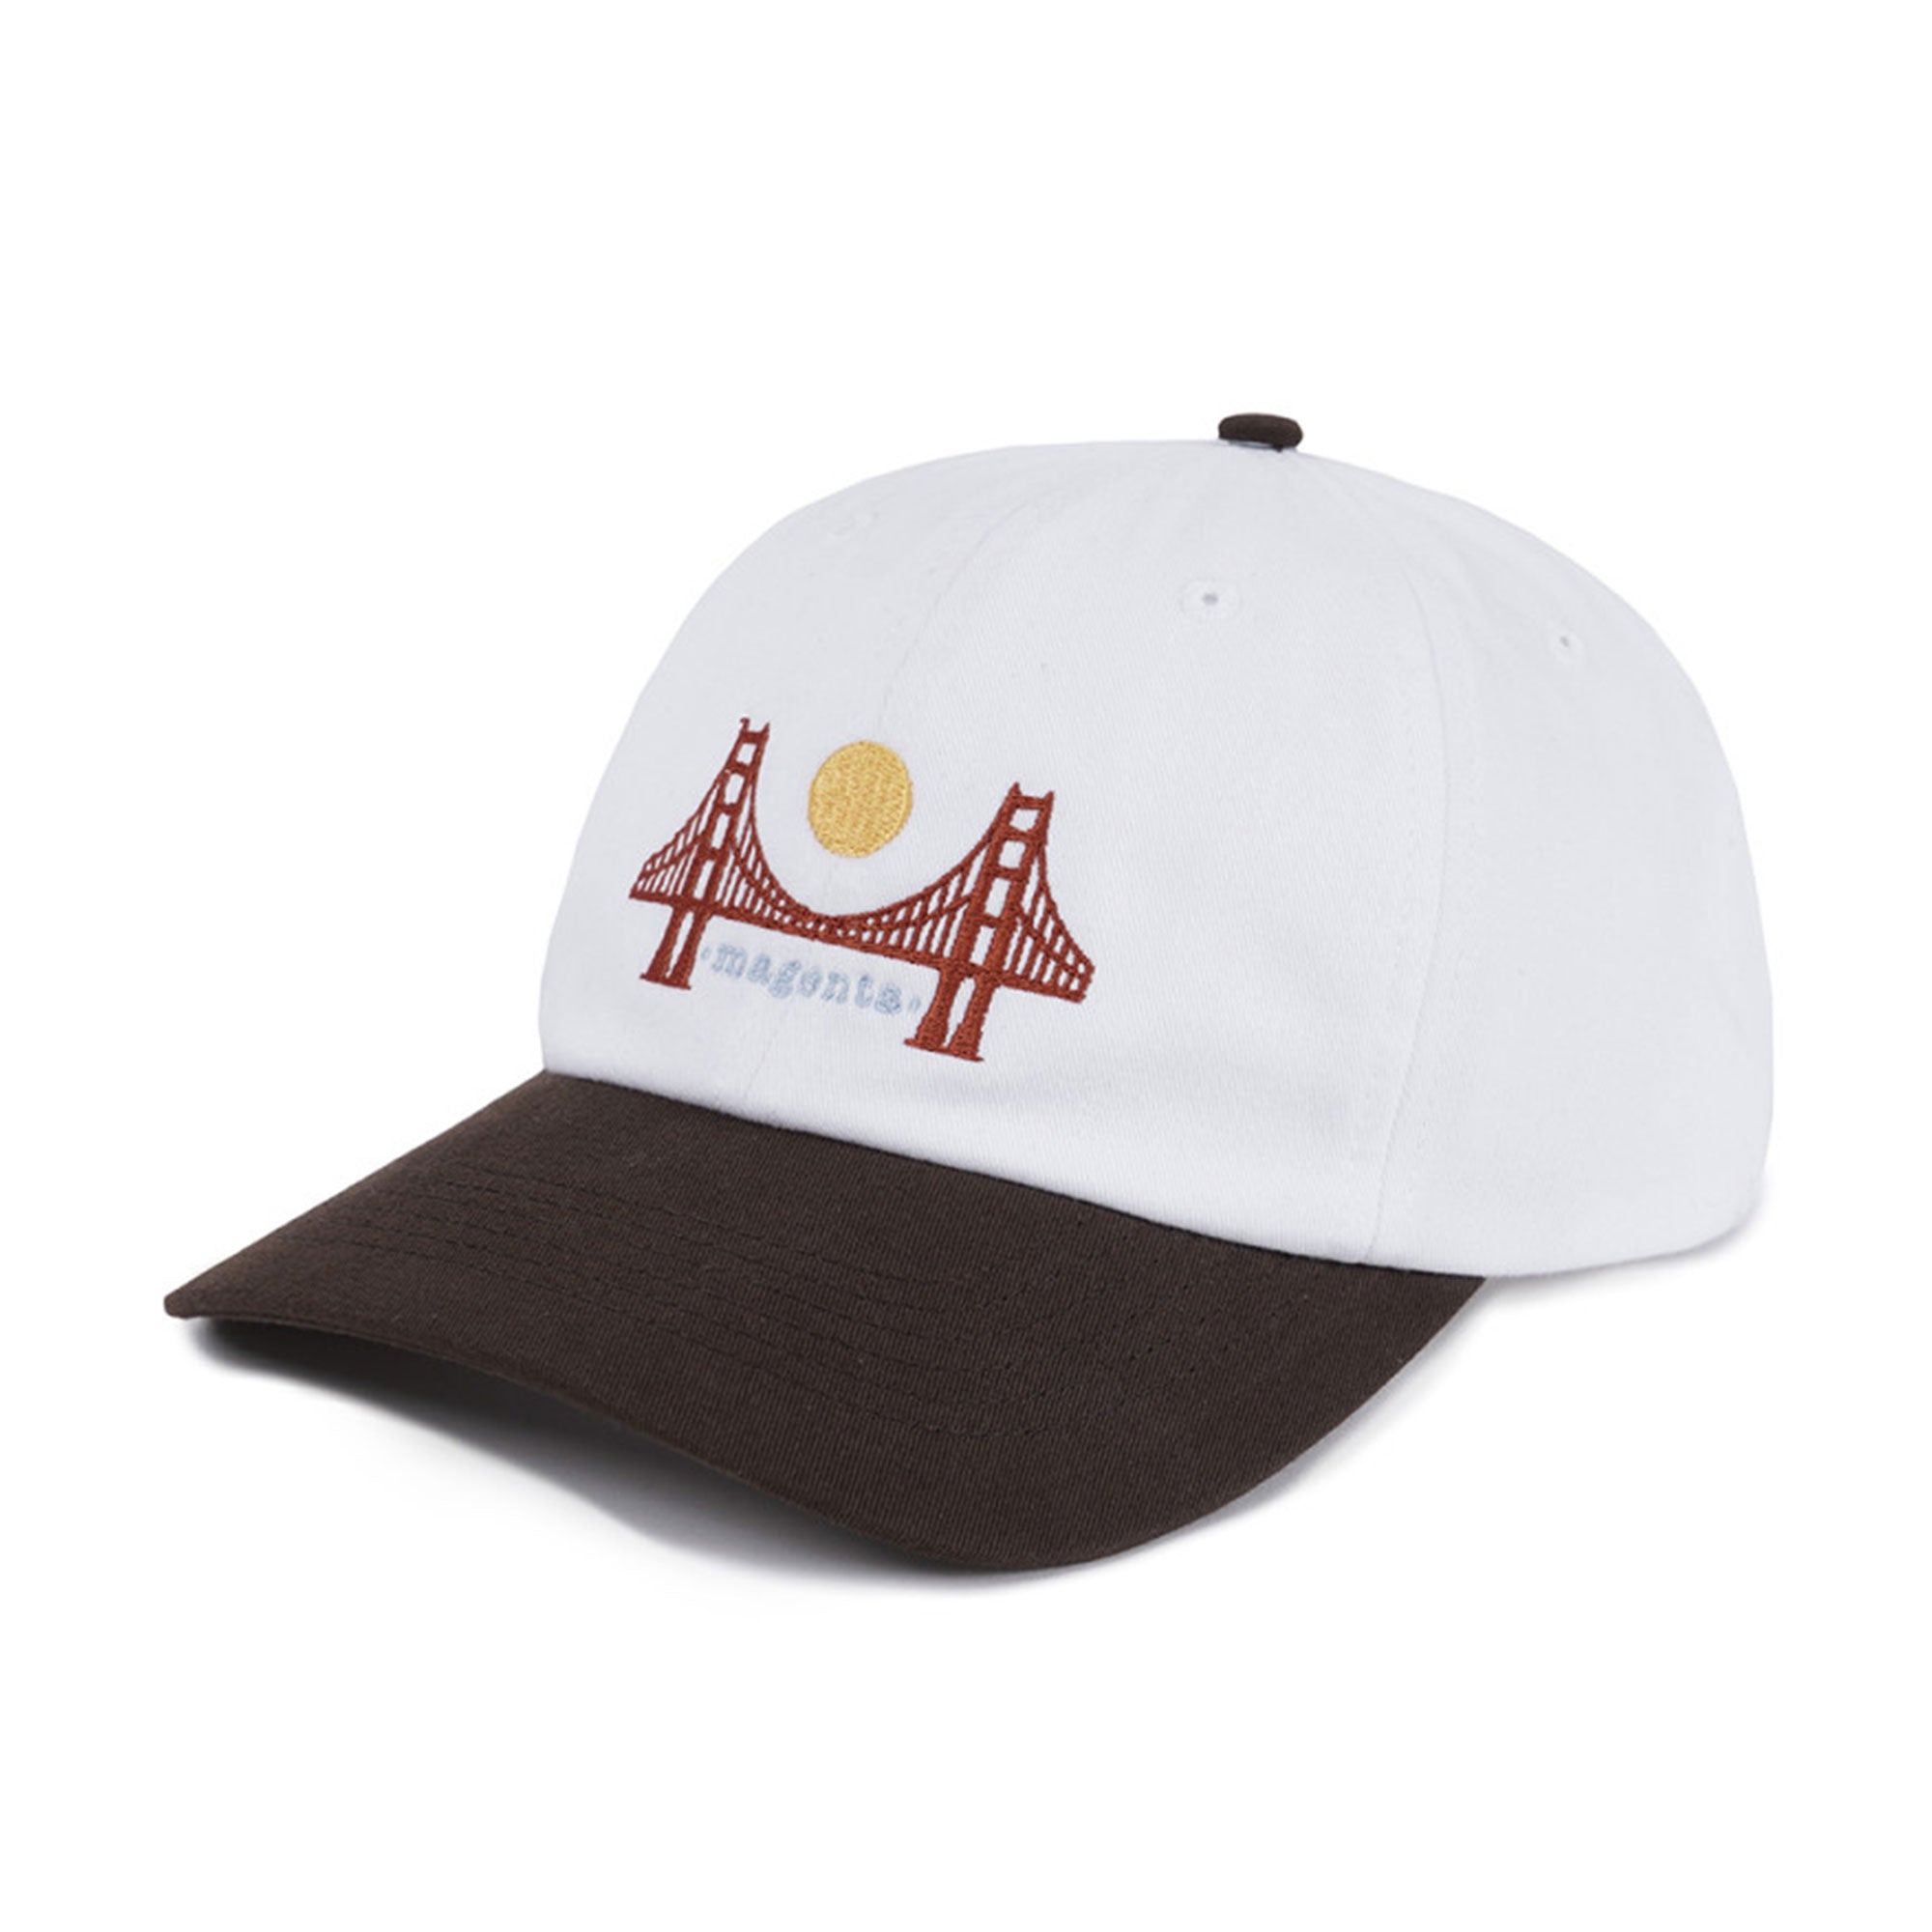 Magenta SF Adjustable Dad Cap Product Photo #1